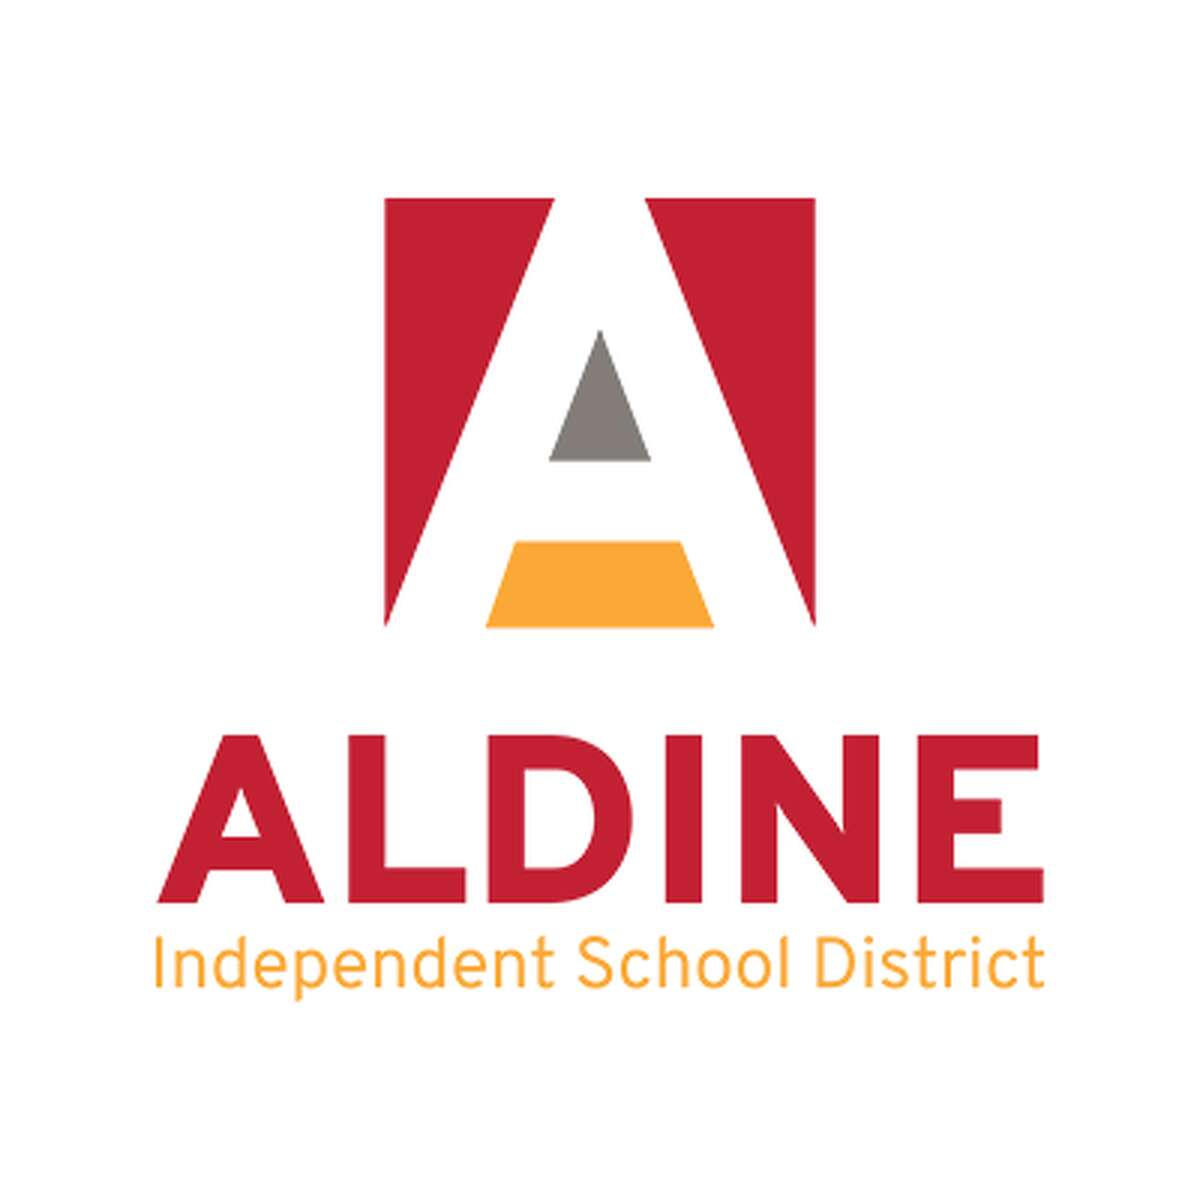 A former Aldine ISD teacher was arrested this month for allegedly sending a 15-year-old student sexually explicit photographs and messages, according to court records.